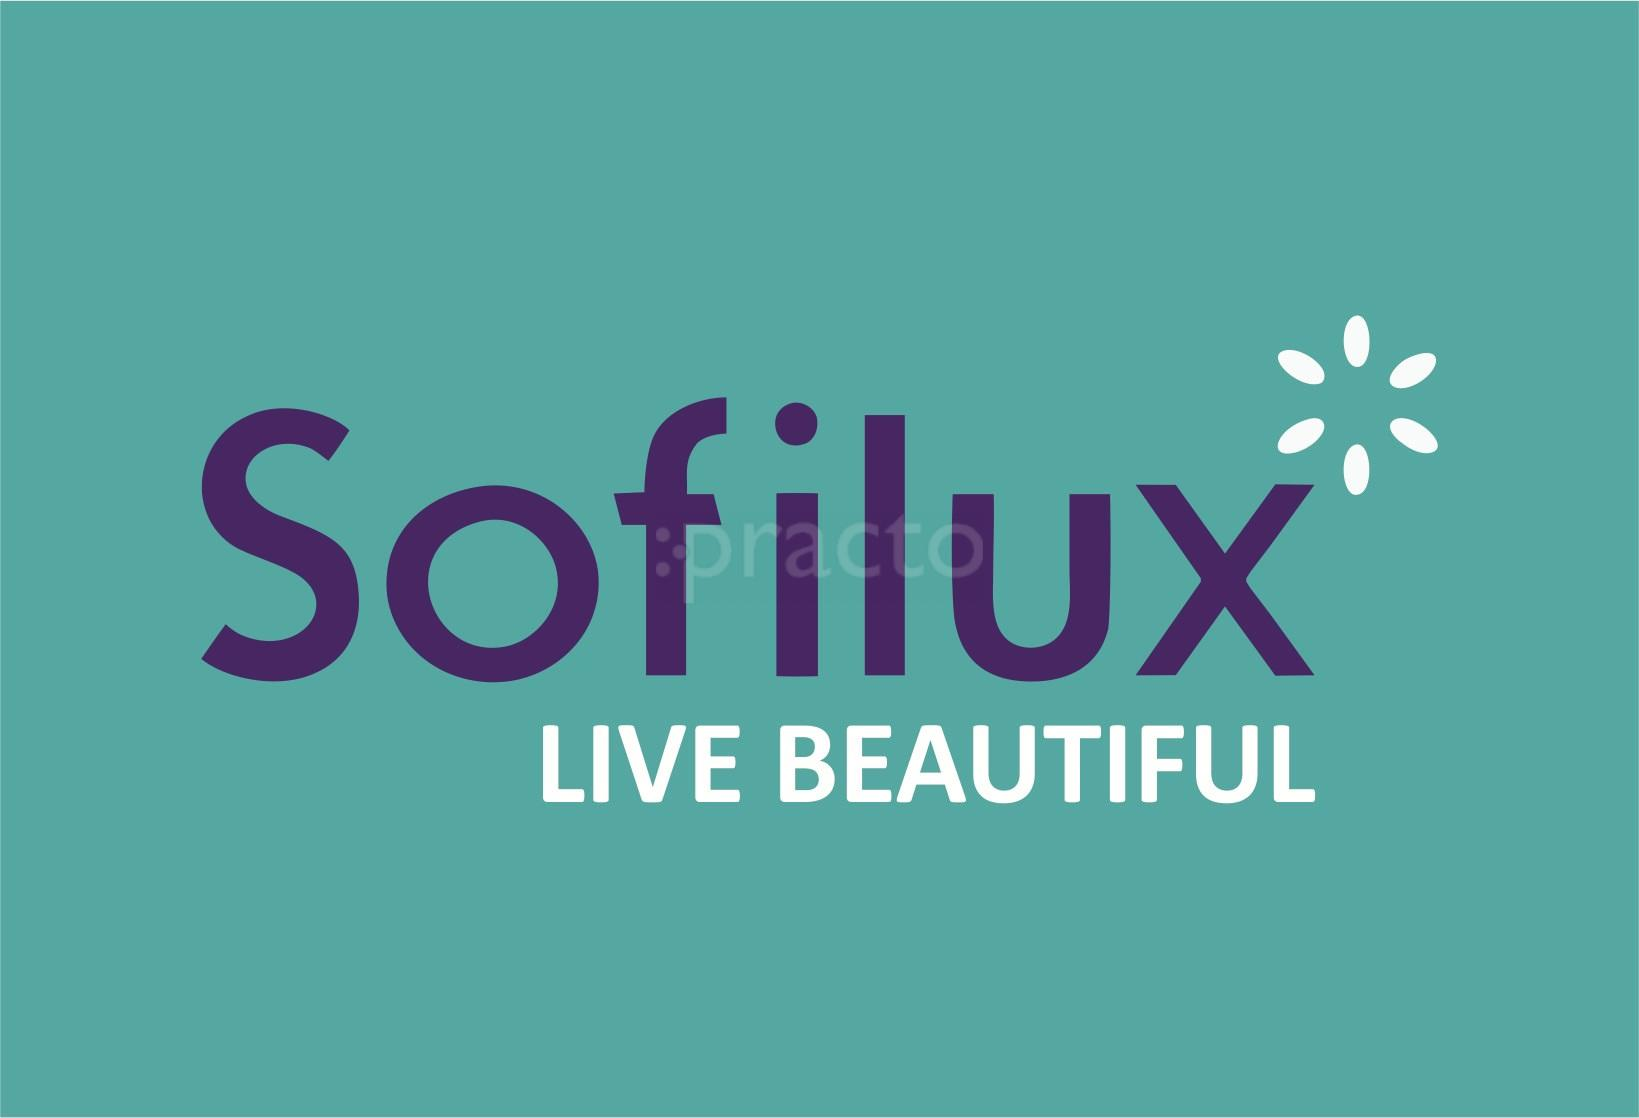 Sofilux Skin Clinic and Sports Injury Clinic